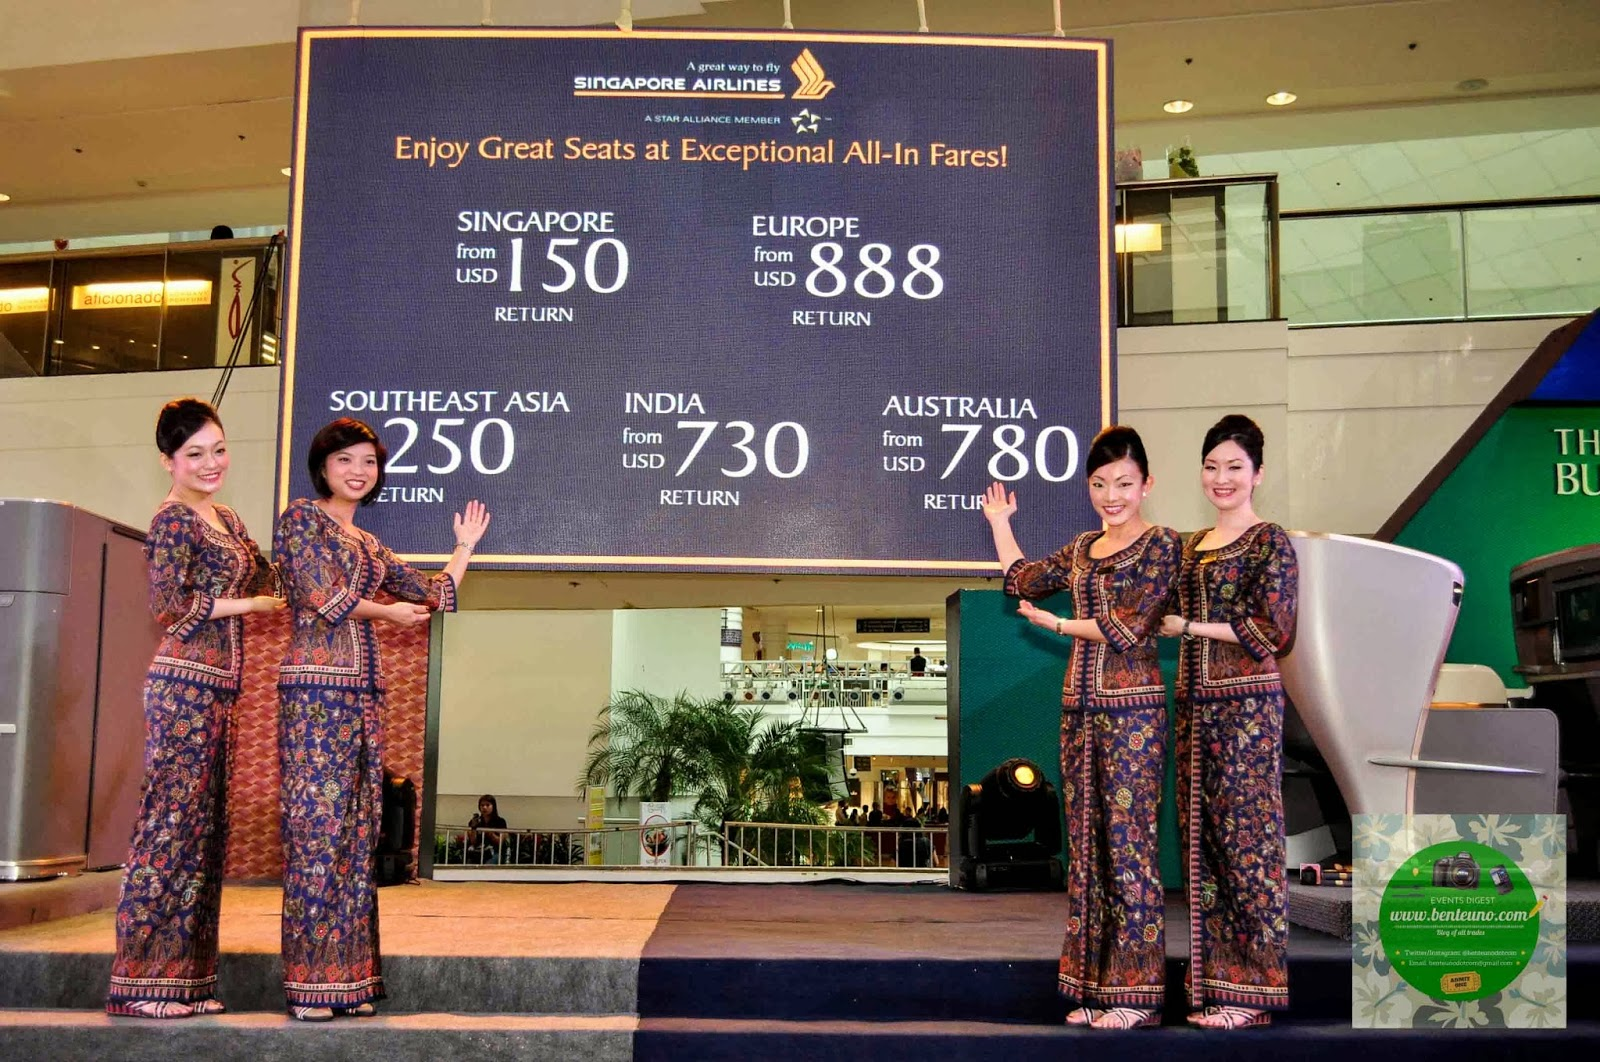 Singapore Airlines exceptional all-in fares